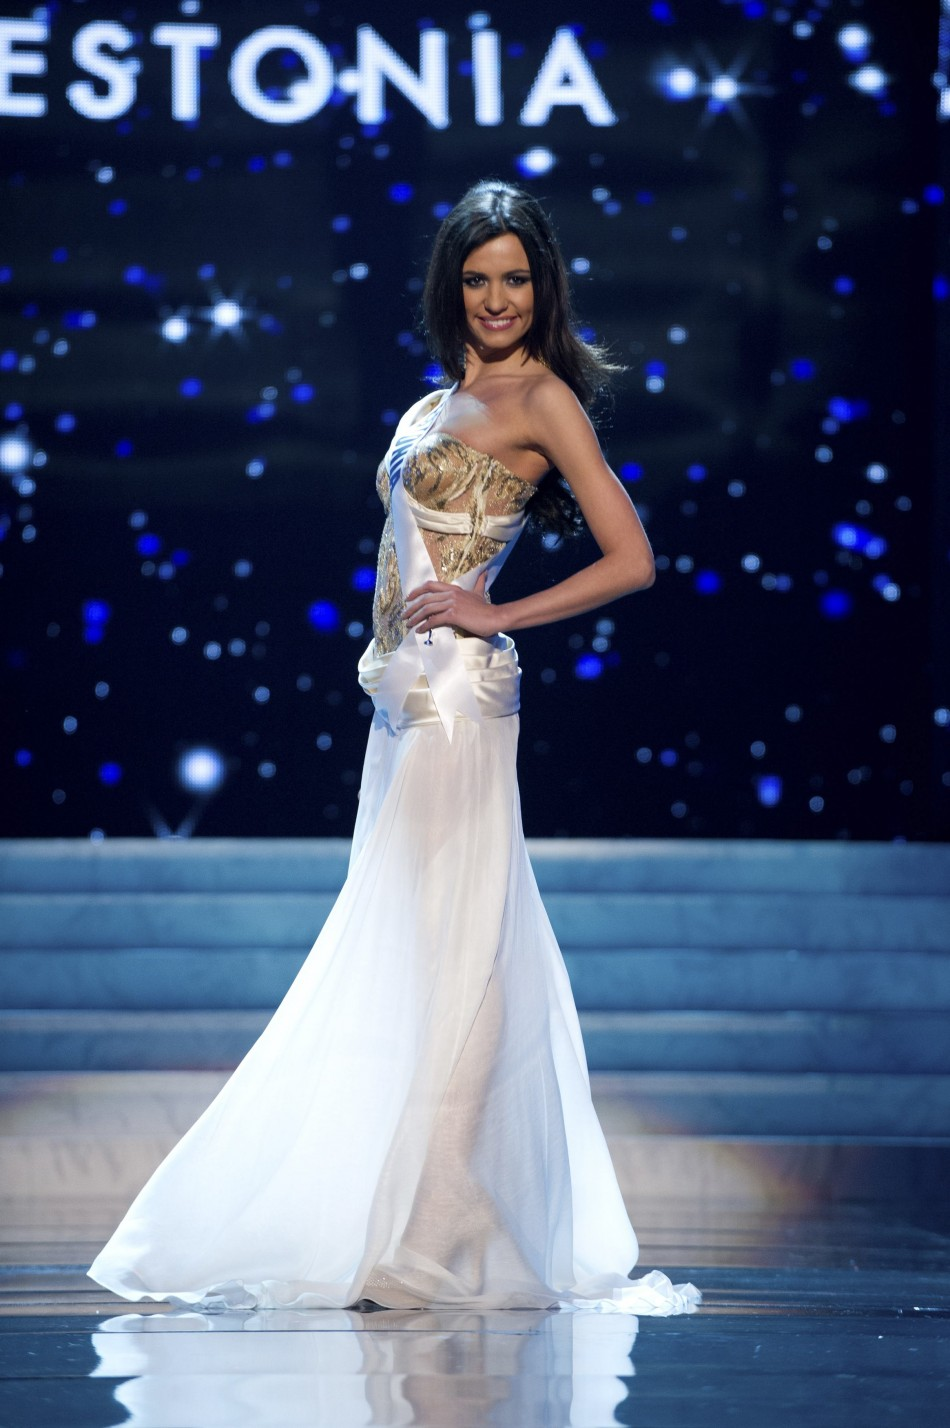 Miss Estonia 2012 Korneitsik competes in an evening gown of her choice during the Evening Gown Competition of the 2012 Miss Universe Presentation Show in Las Vegas